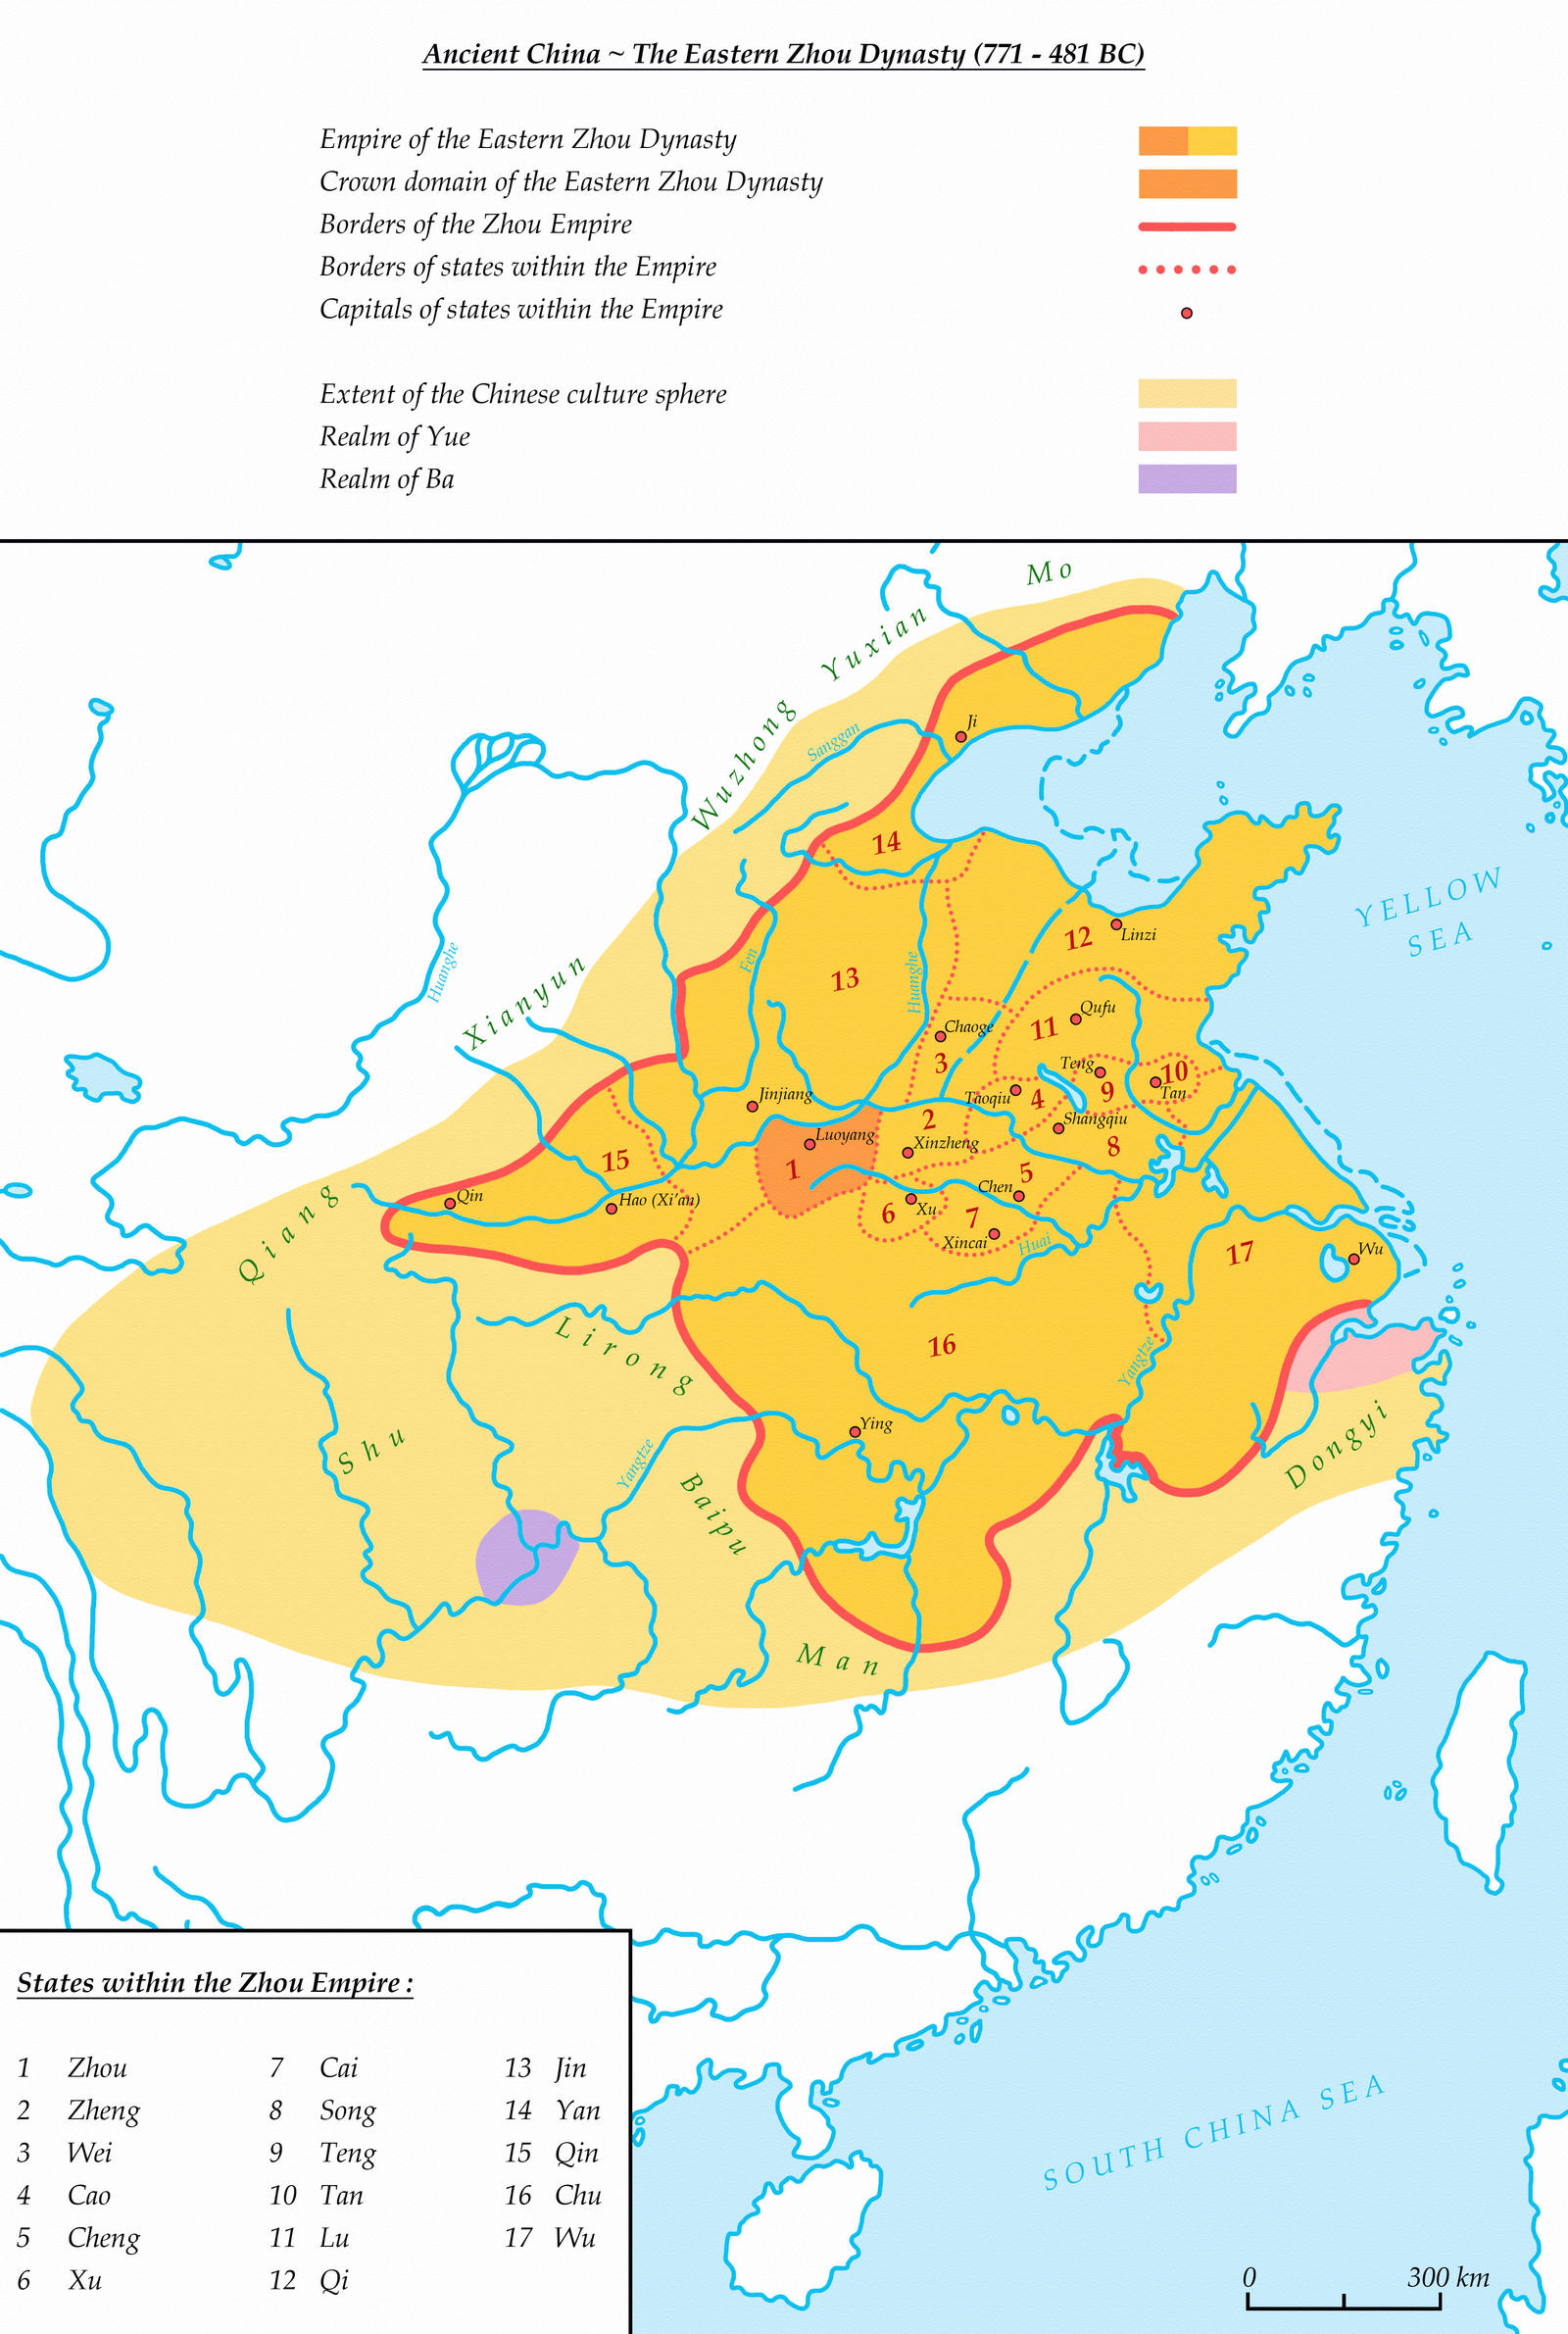 The eastern zhou dynasty 770 481 bc by undevicesimus on deviantart the eastern zhou dynasty 770 481 bc by undevicesimus sciox Gallery